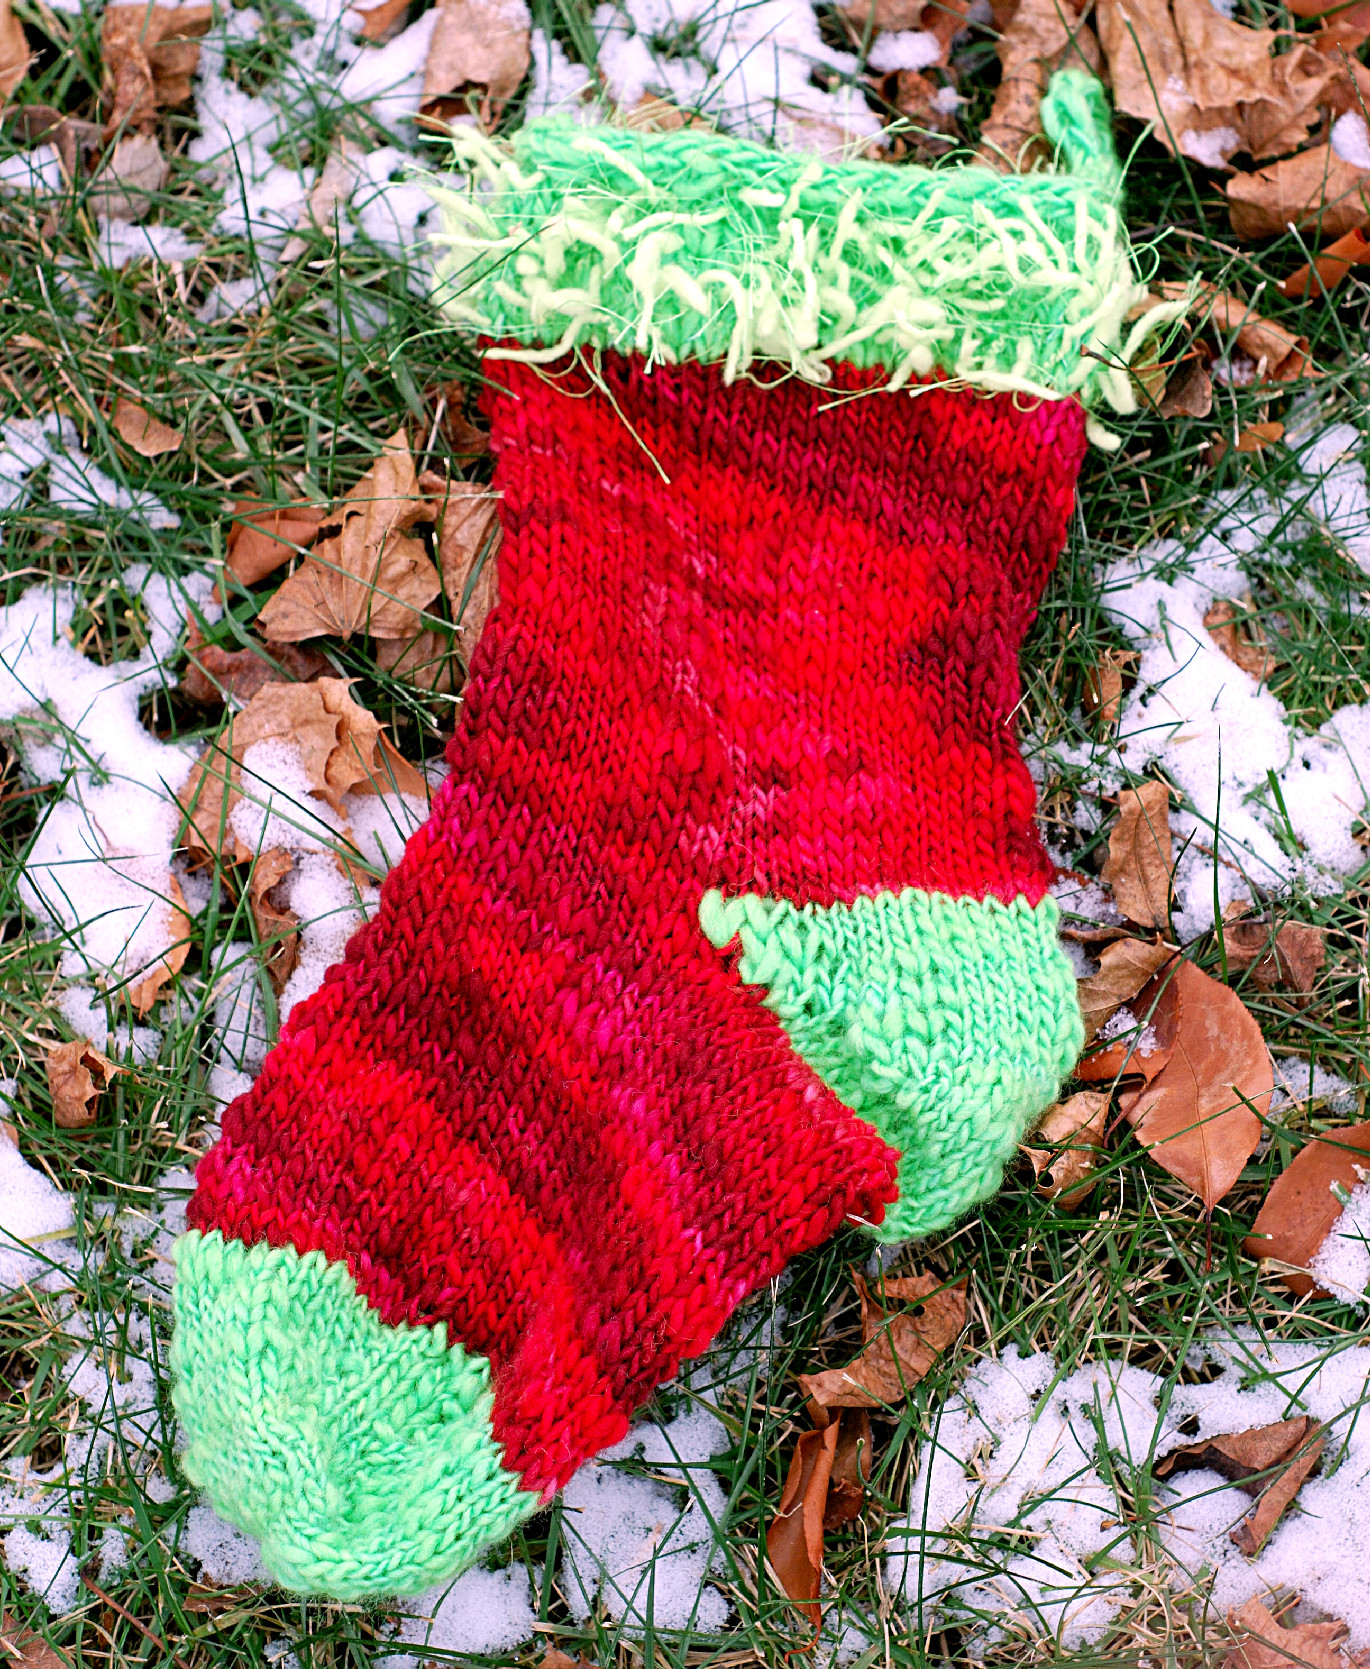 The first of what will heopefully be a series of stockings